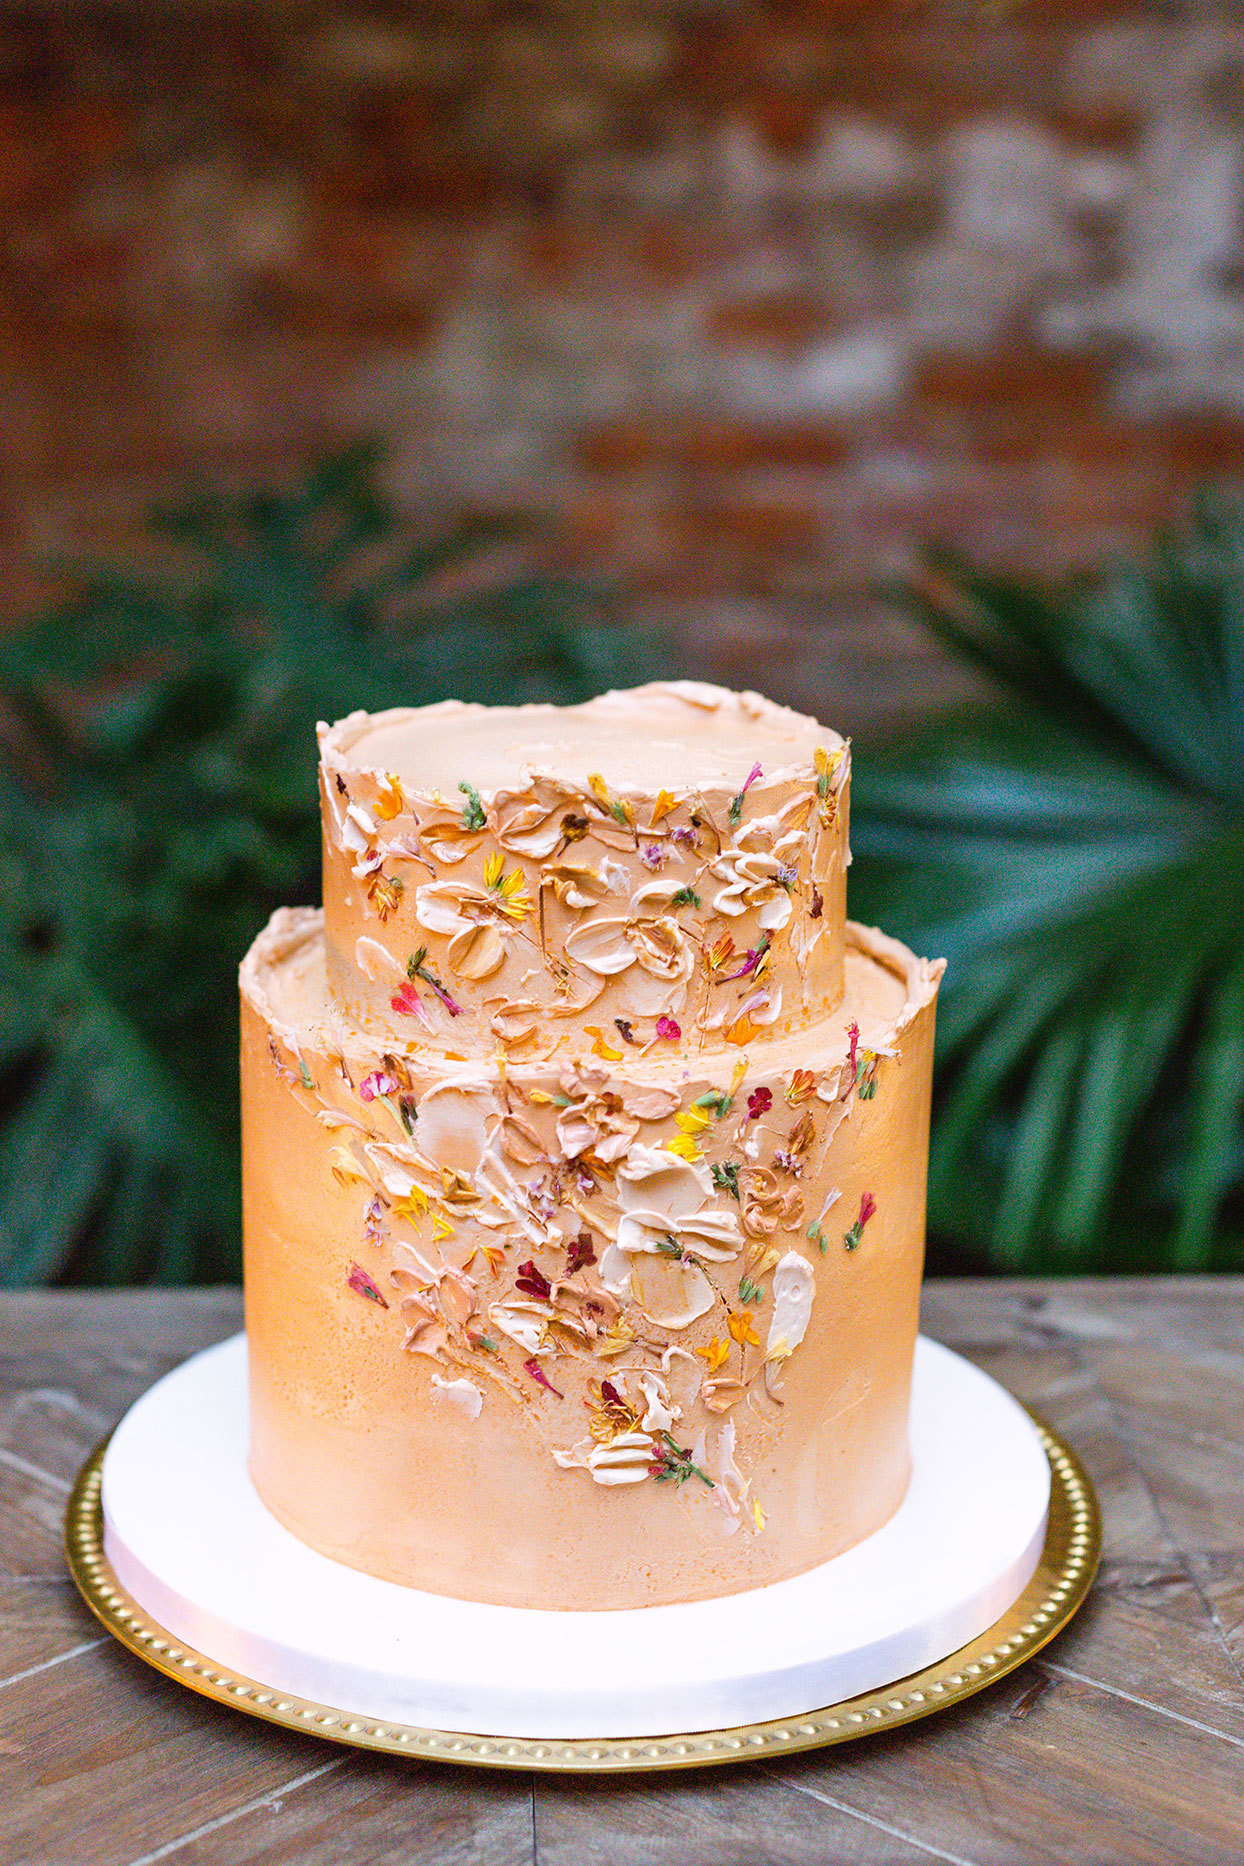 two tier orange frosted wedding cake on white tray